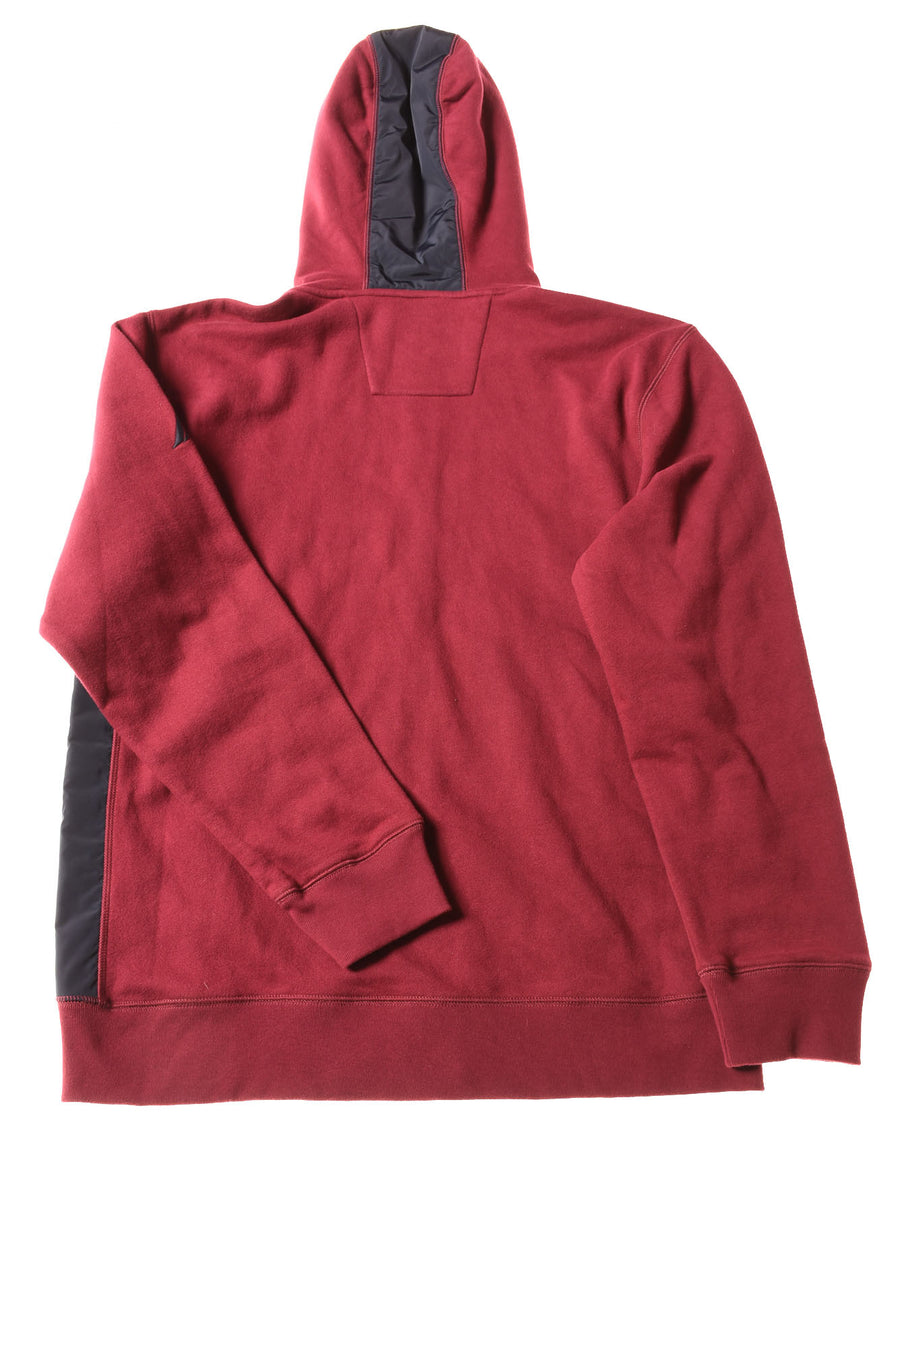 NEW Nautica Men's Shirt X-Large Scarlet